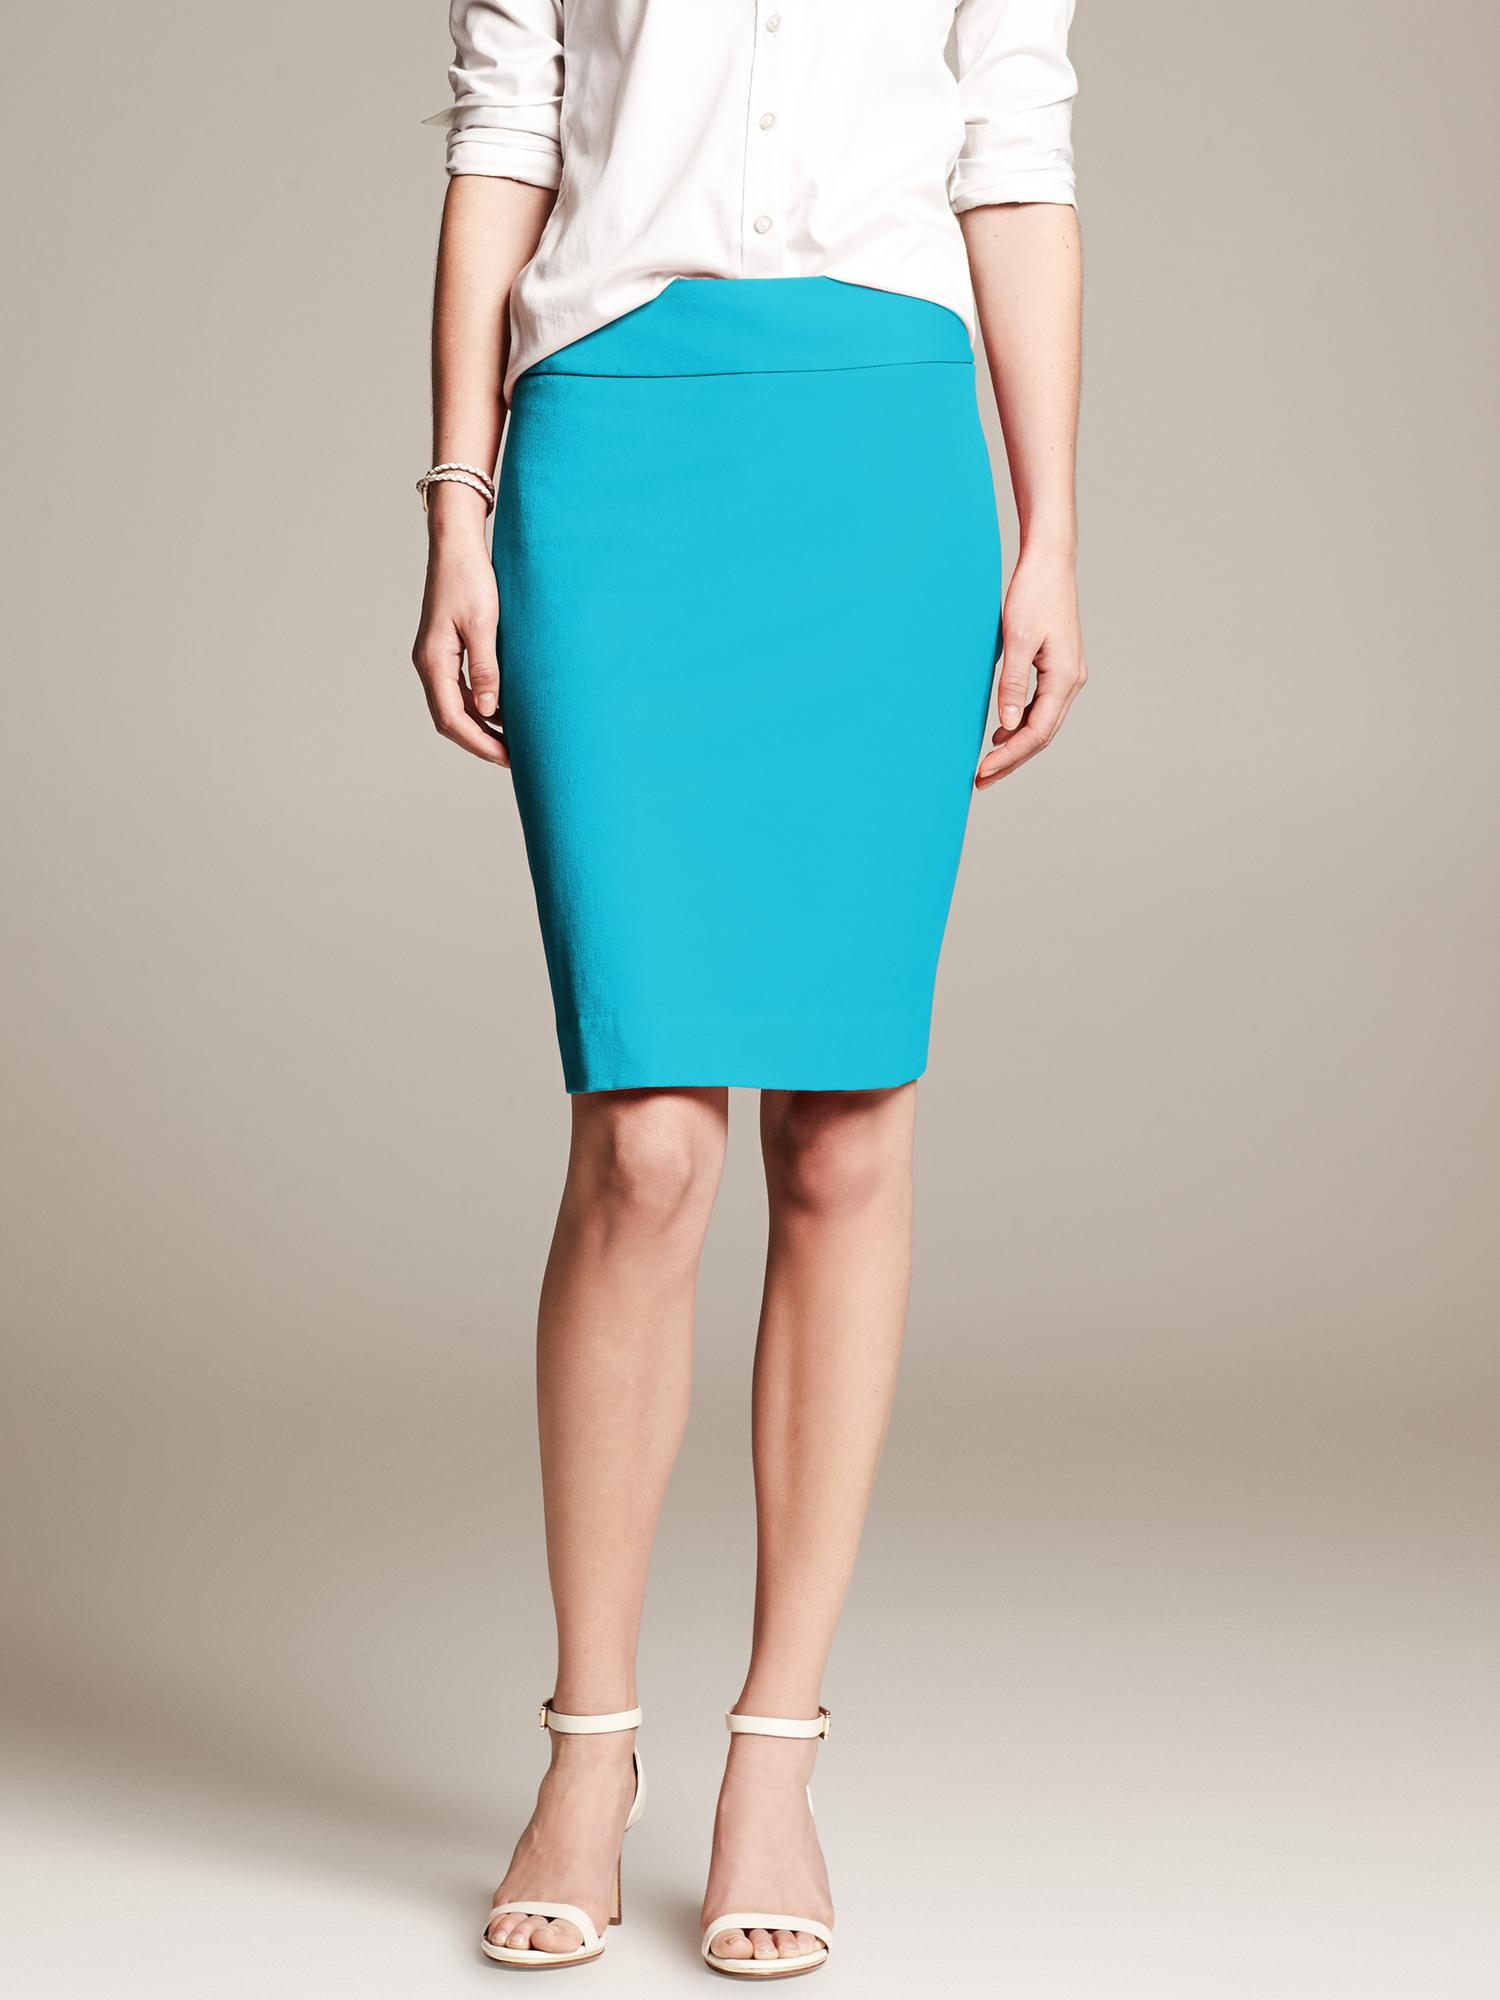 e413fcf9e Banana Republic Sloan Fit Pencil Skirt Totally Turquoise in Blue - Lyst